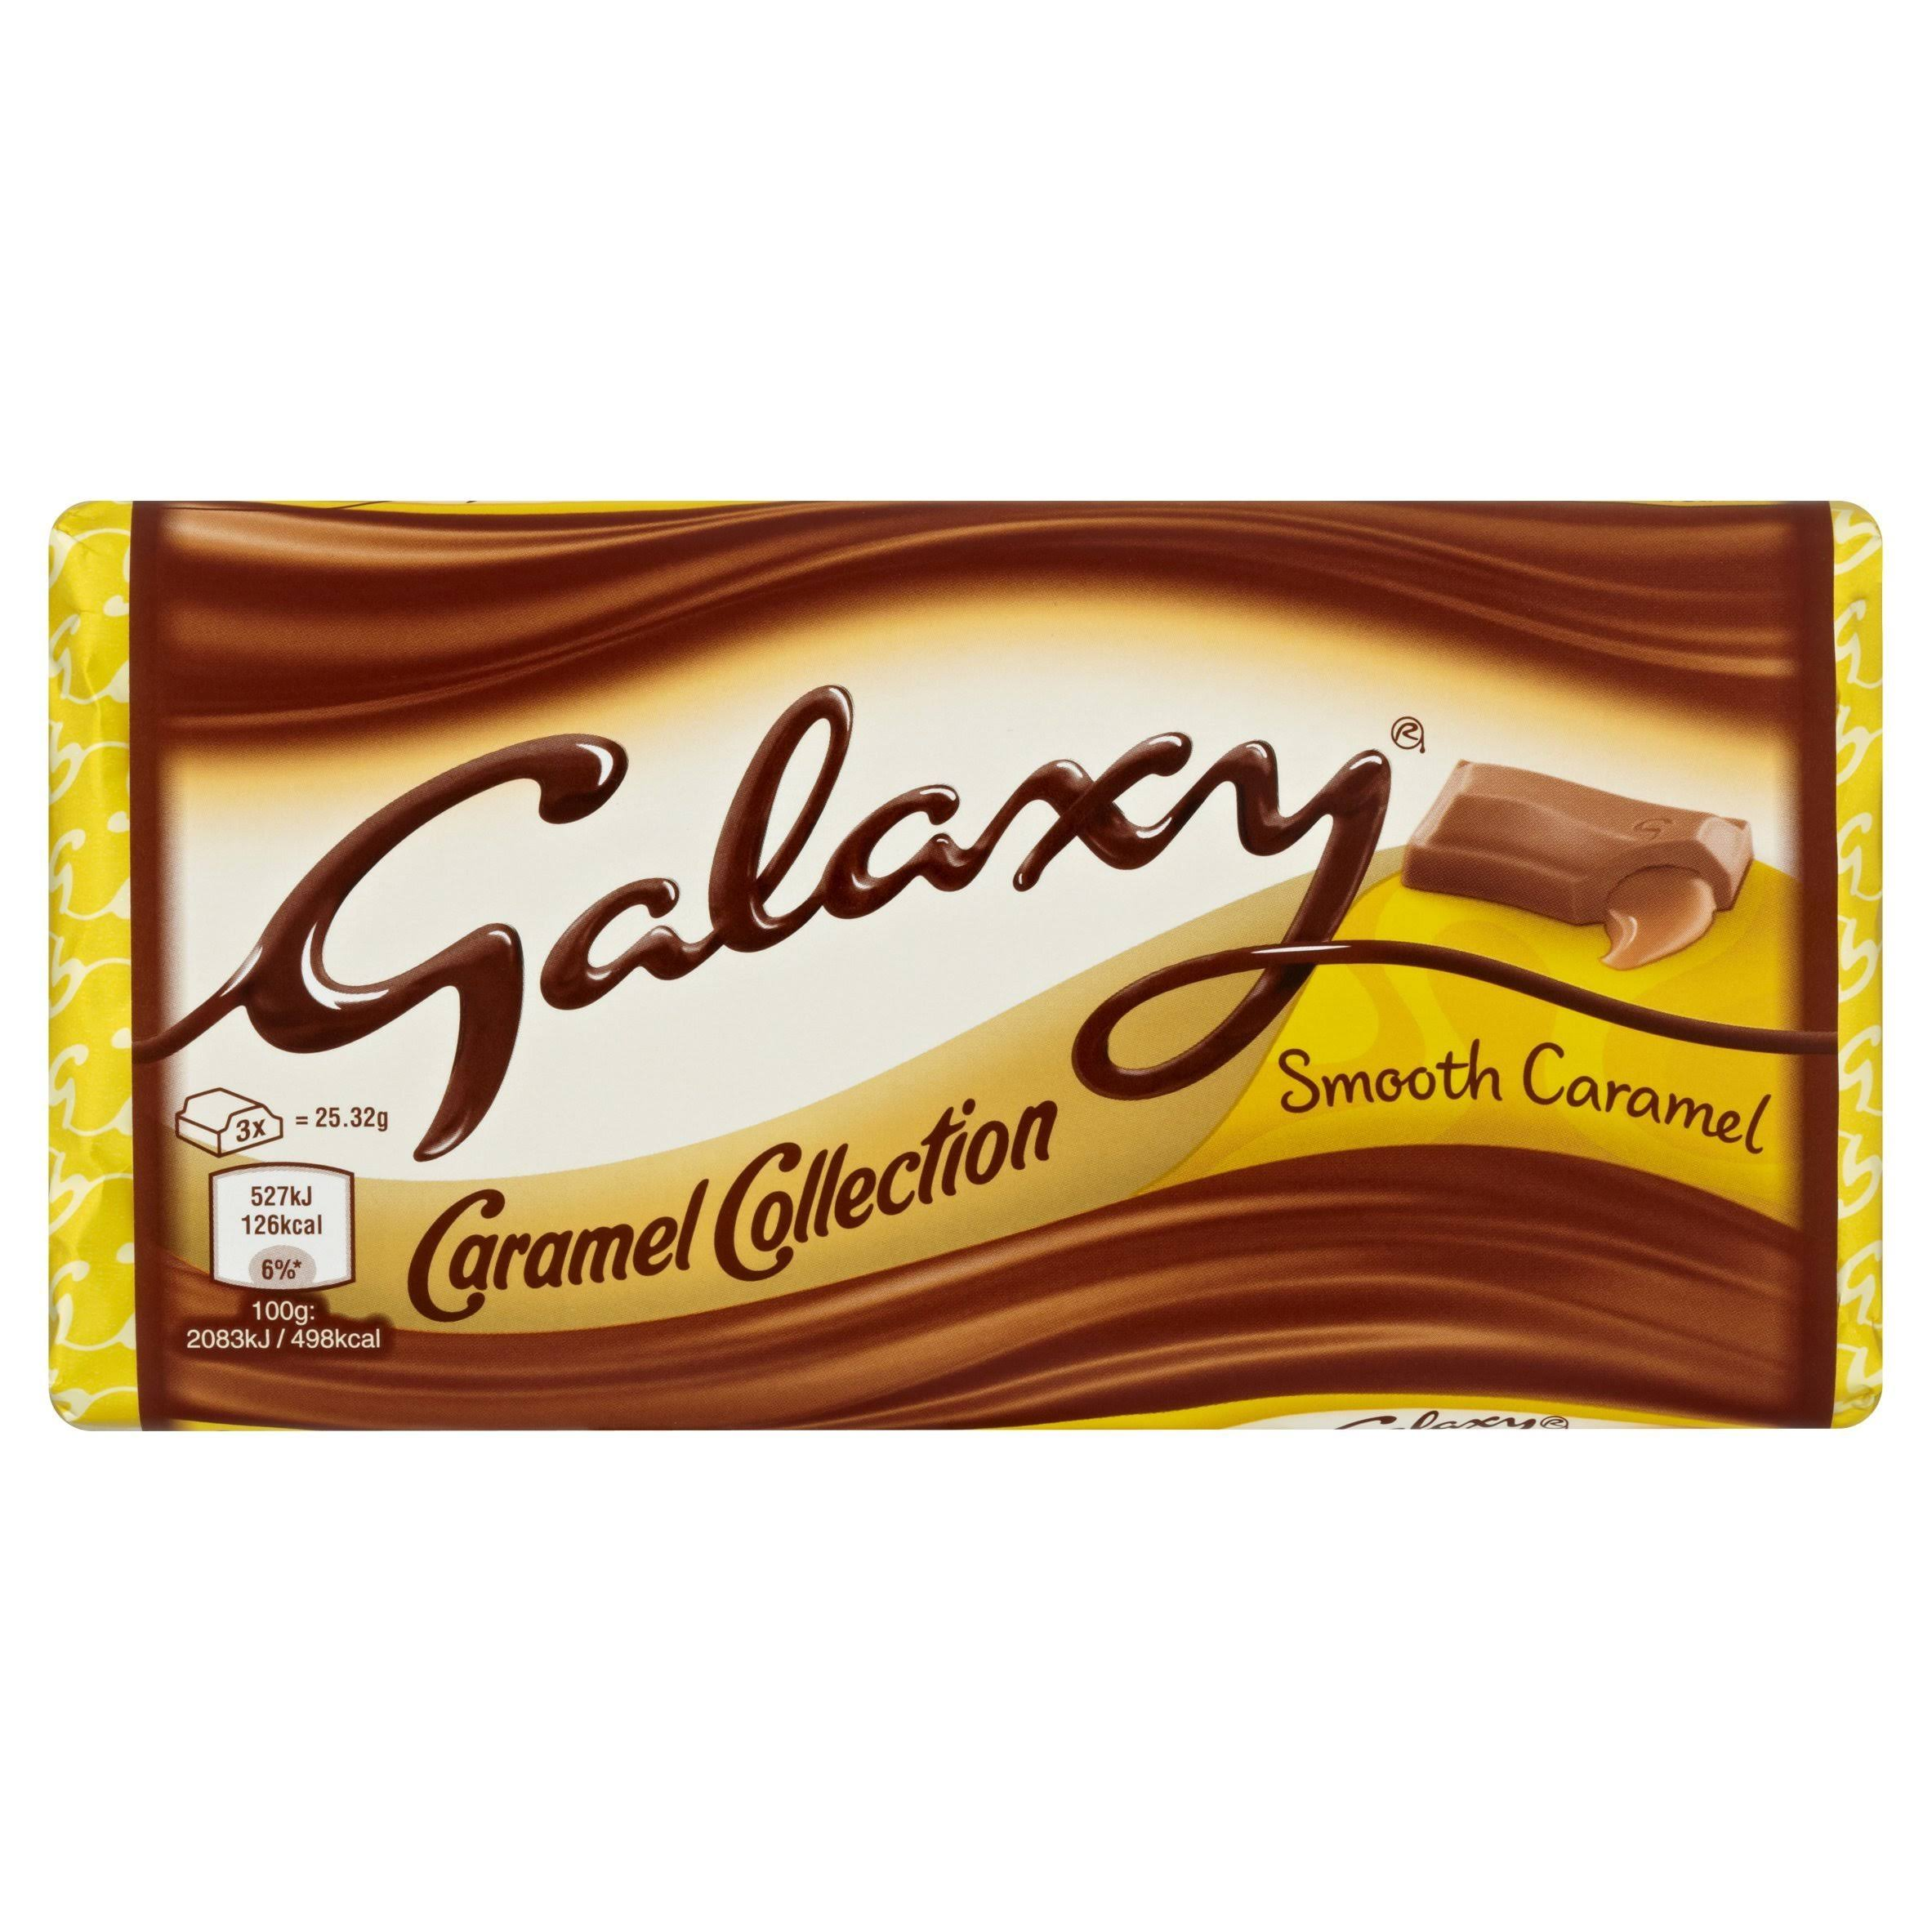 Galaxy Smooth Caramel Chocolate Bar - 135g